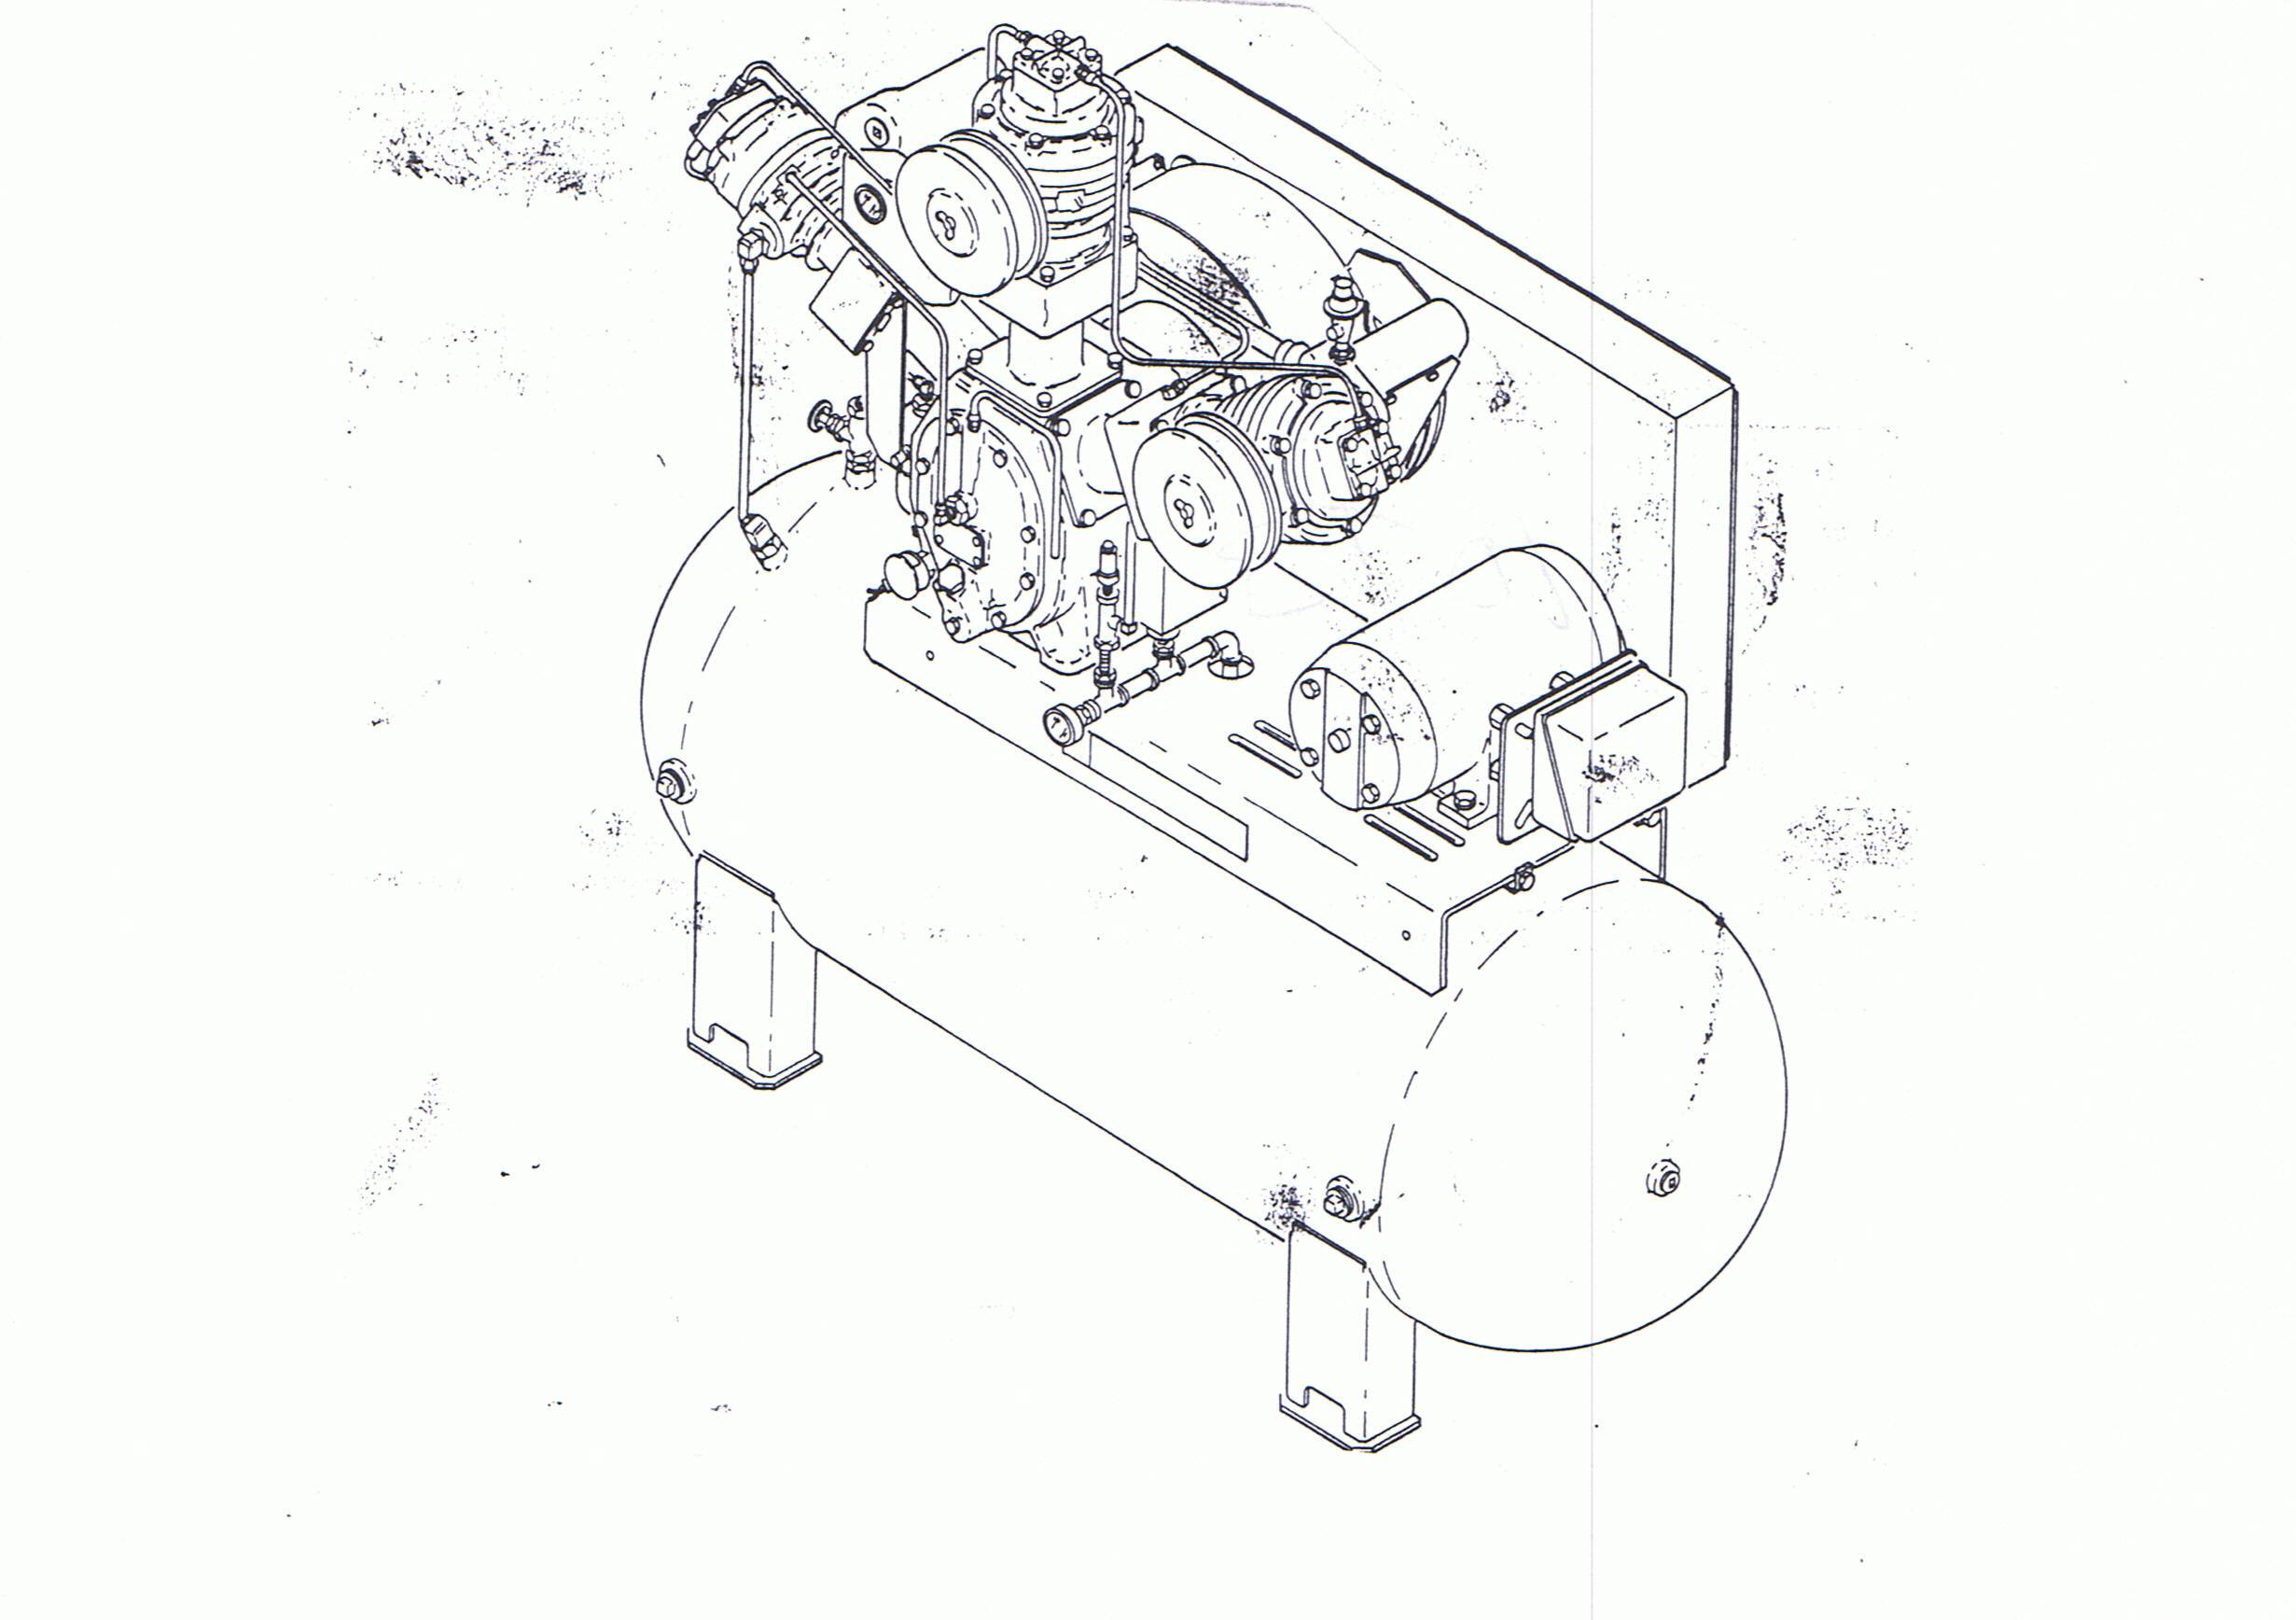 Ingersoll Rand P185wjd Parts Manual